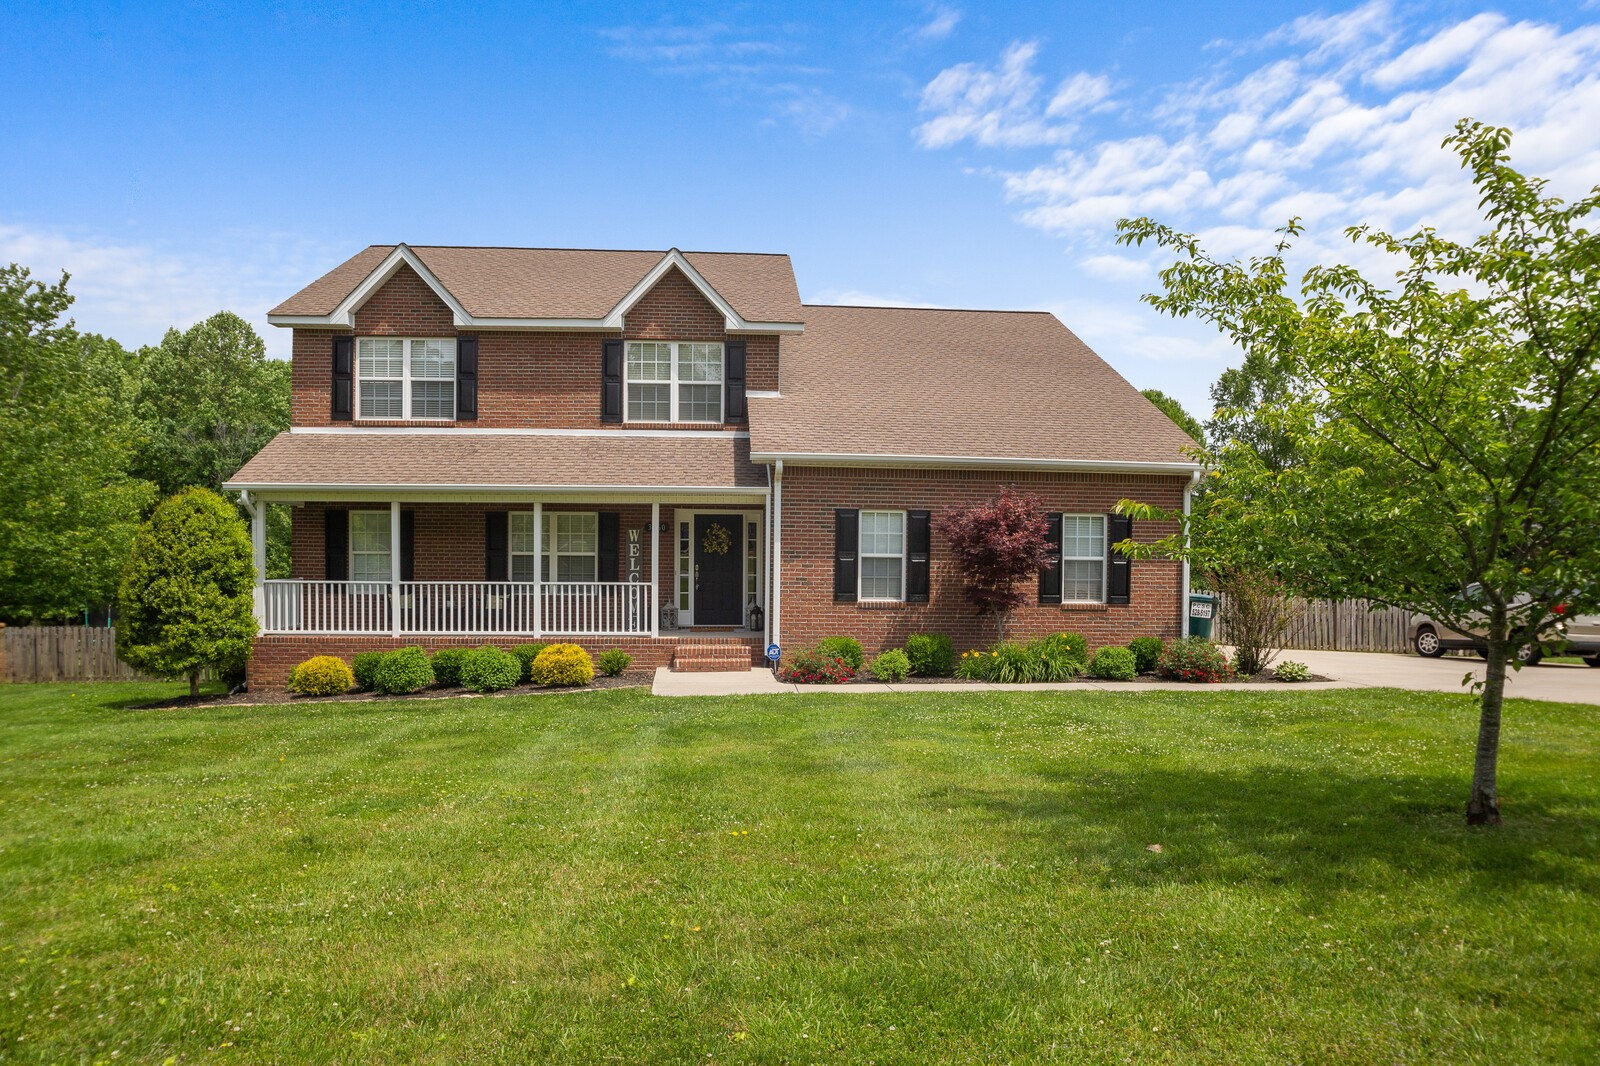 3460 Plantation Dr Property Photo - Cookeville, TN real estate listing